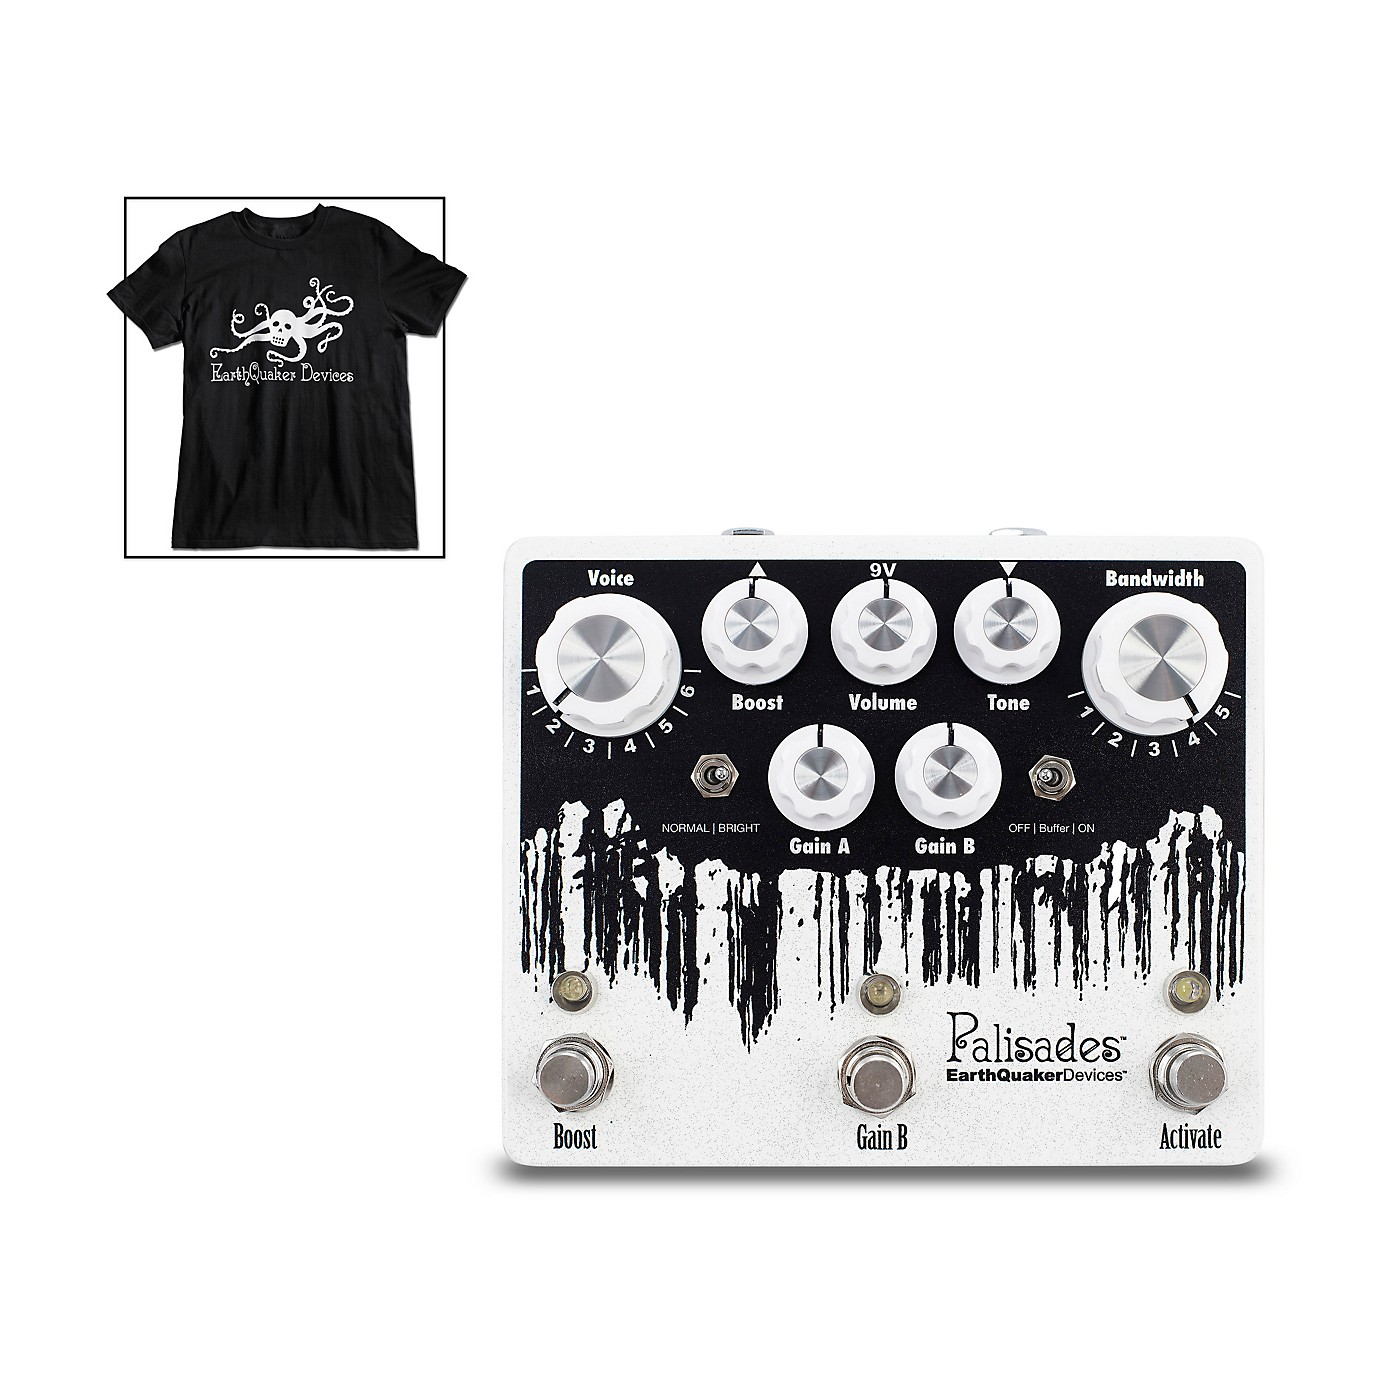 Earthquaker Devices Palisades V2 Overdrive Effects Pedal and Octoskull T-Shirt Large Black thumbnail